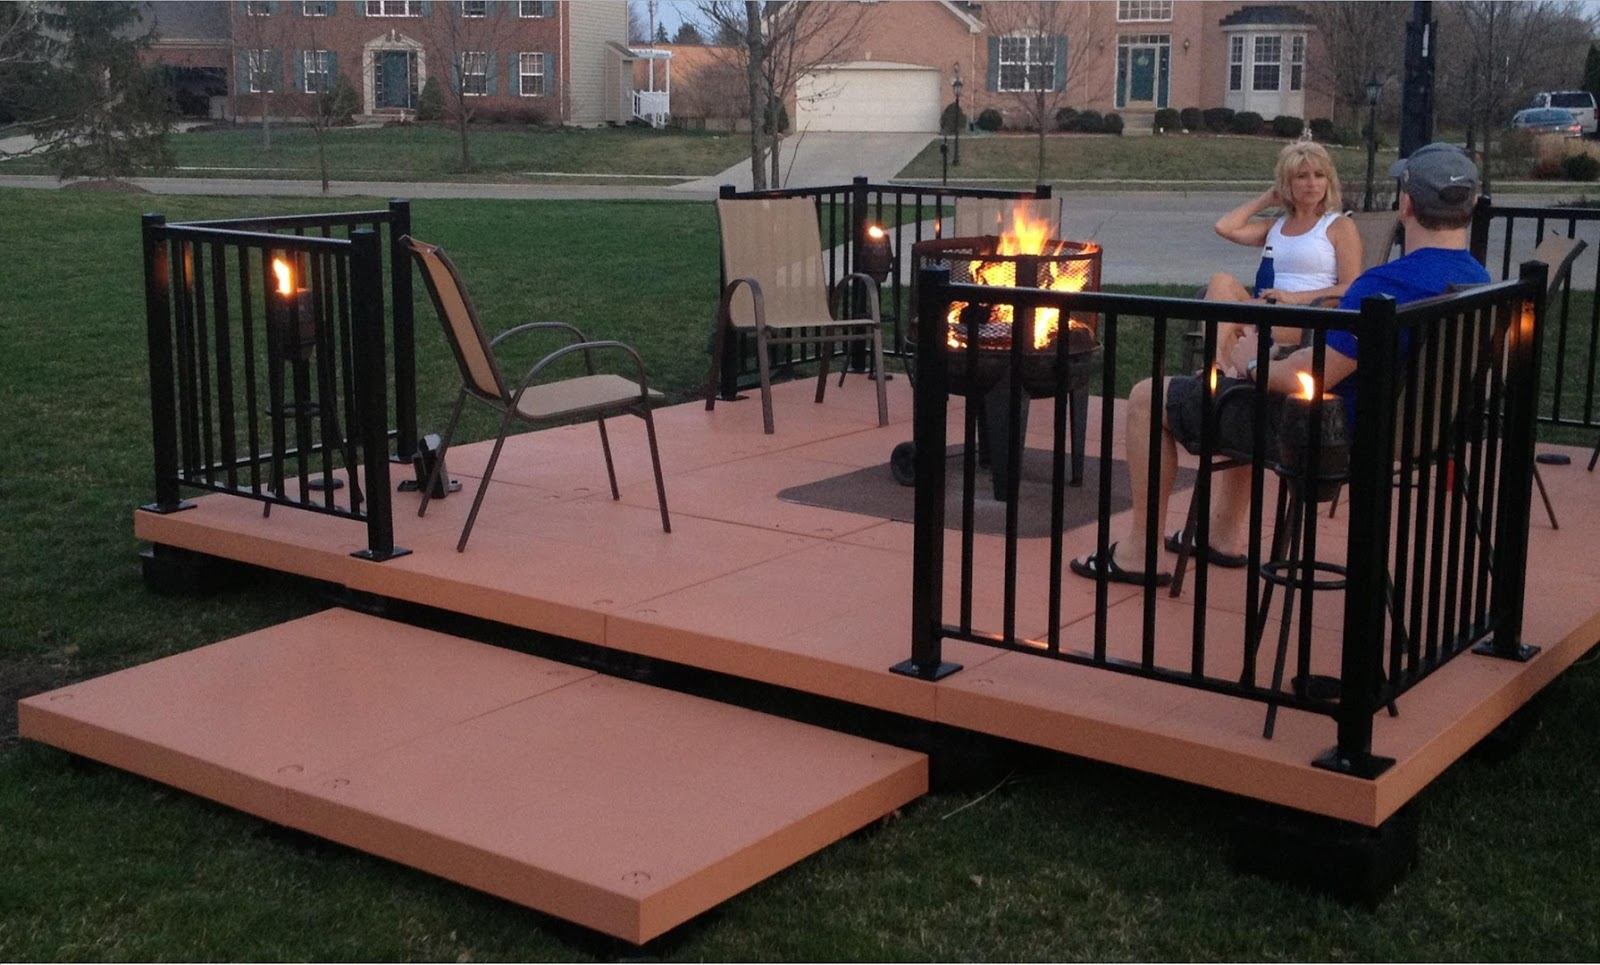 Lush fab glam blogazine outdoor living made fabulously for Outside deck plans